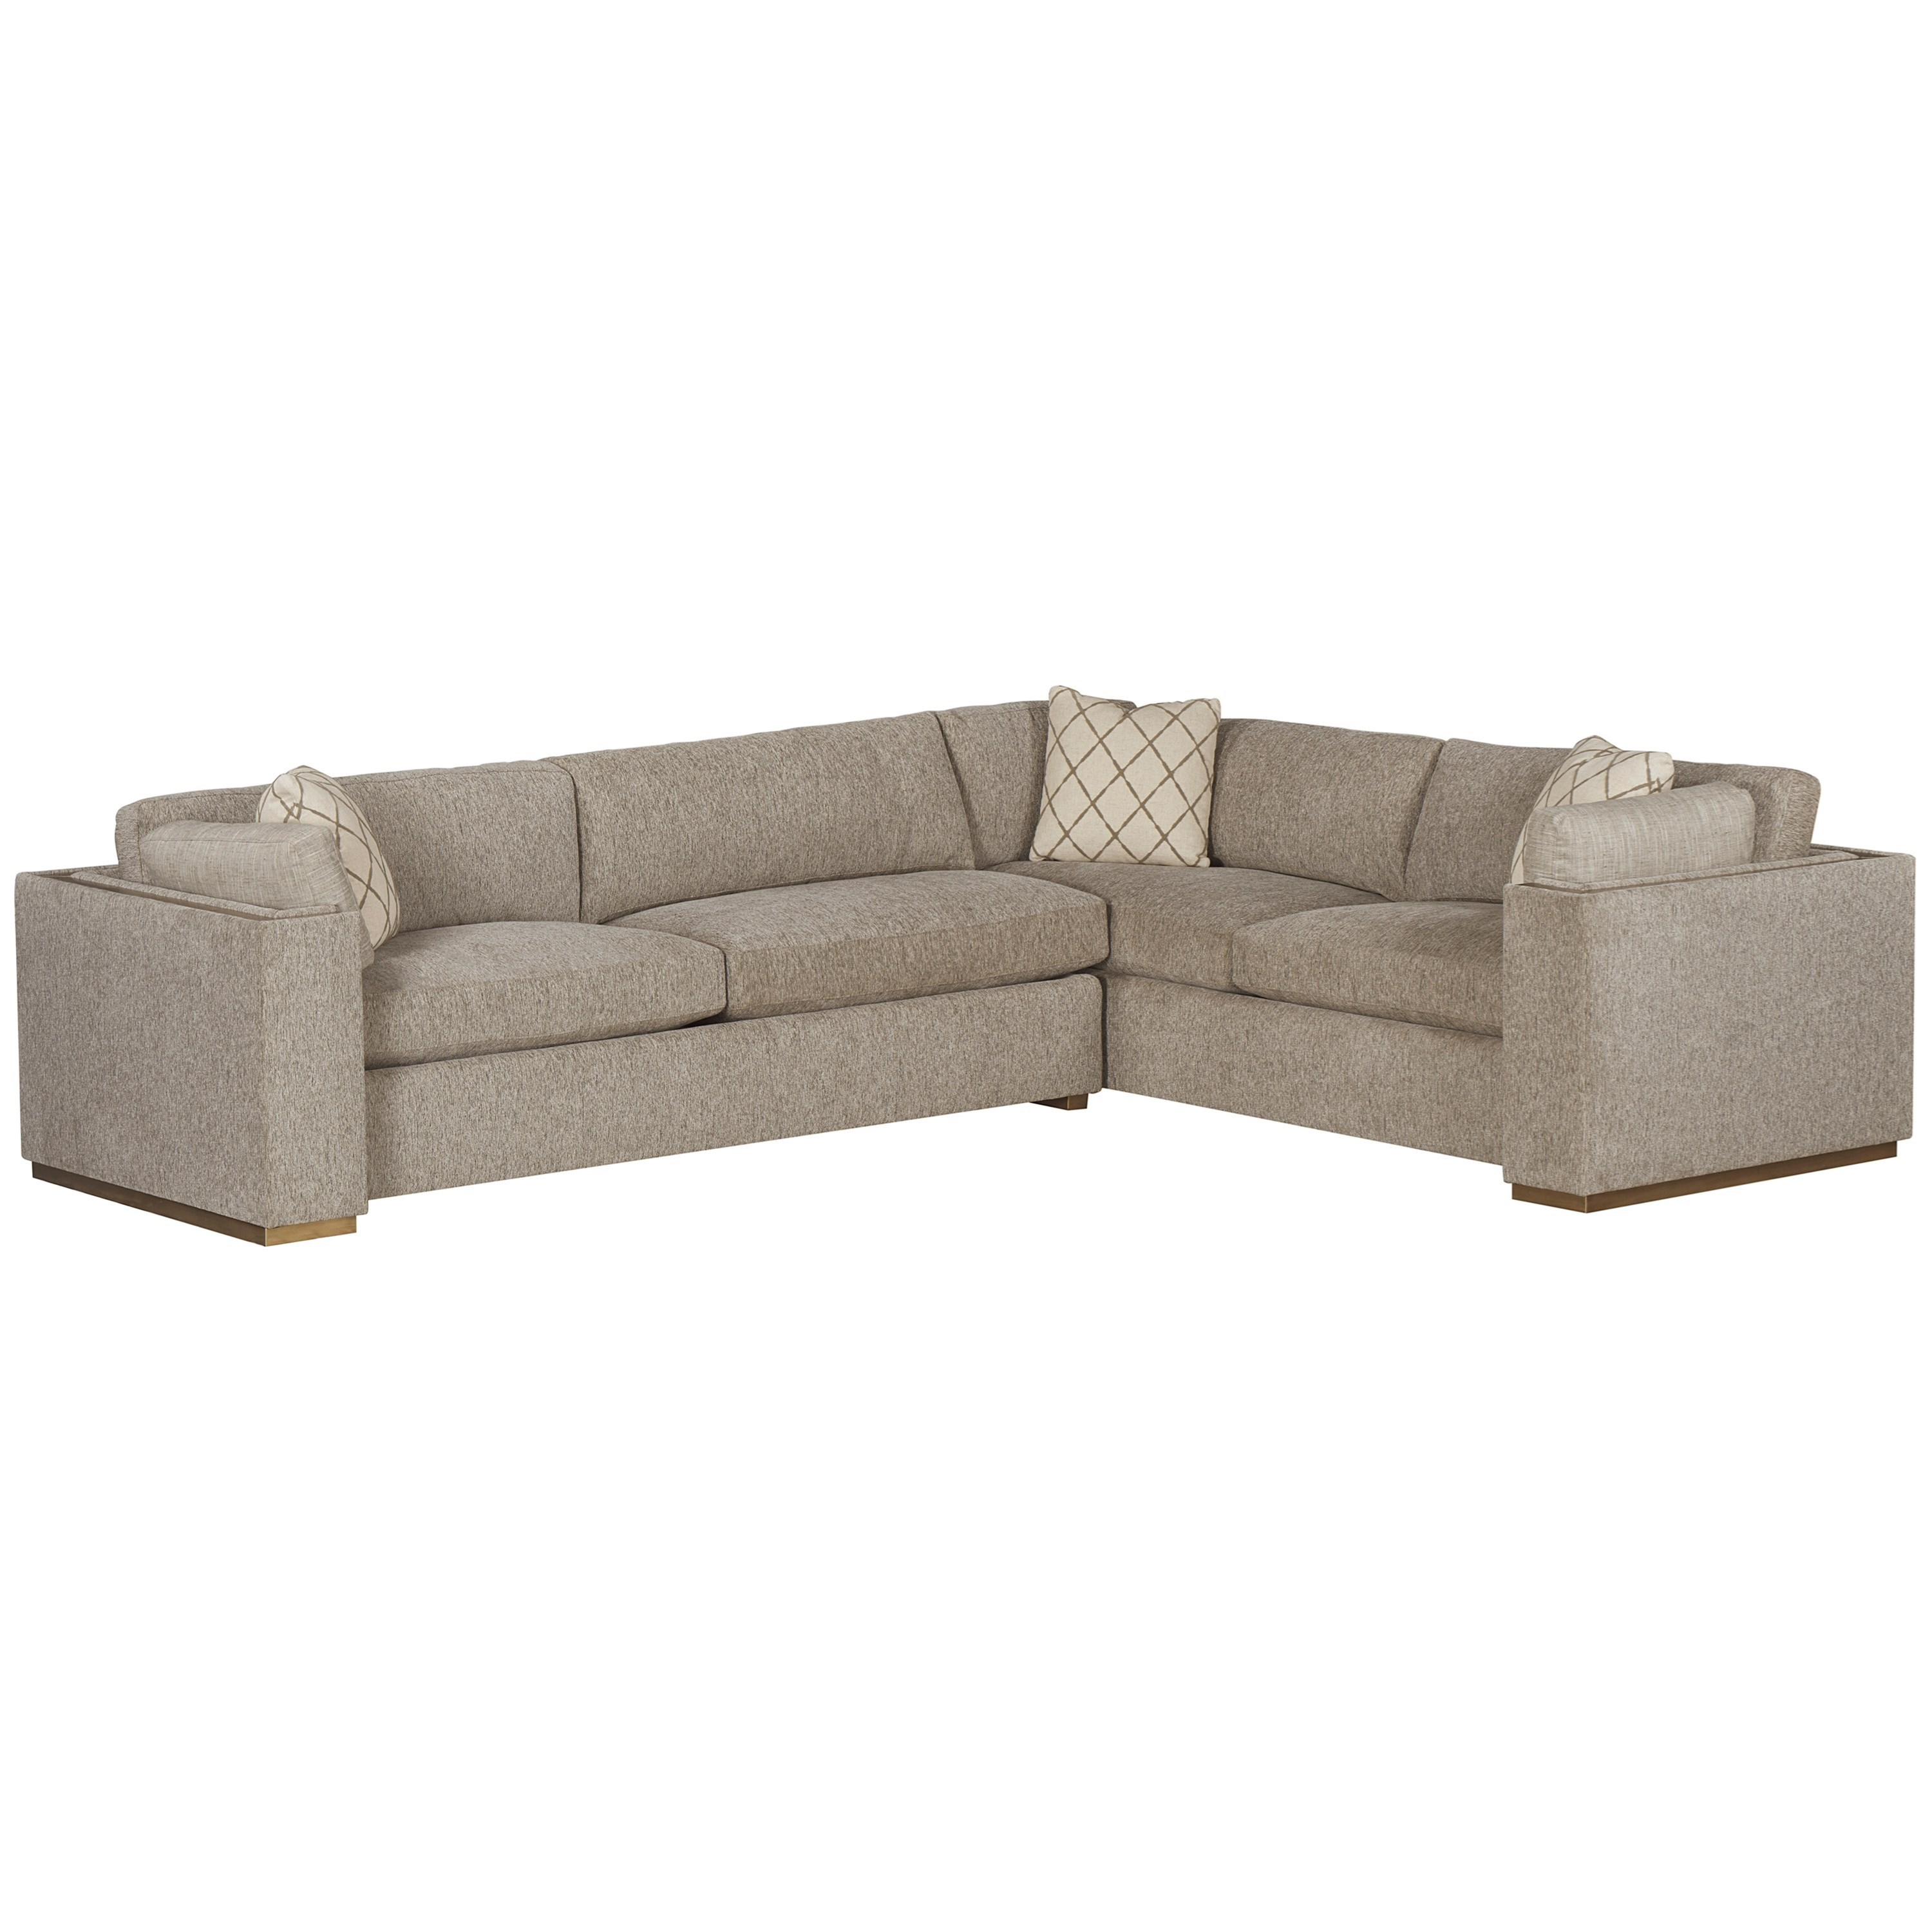 WoodWright Upholstery Sectional Sofa by A.R.T. Furniture Inc at Michael Alan Furniture & Design